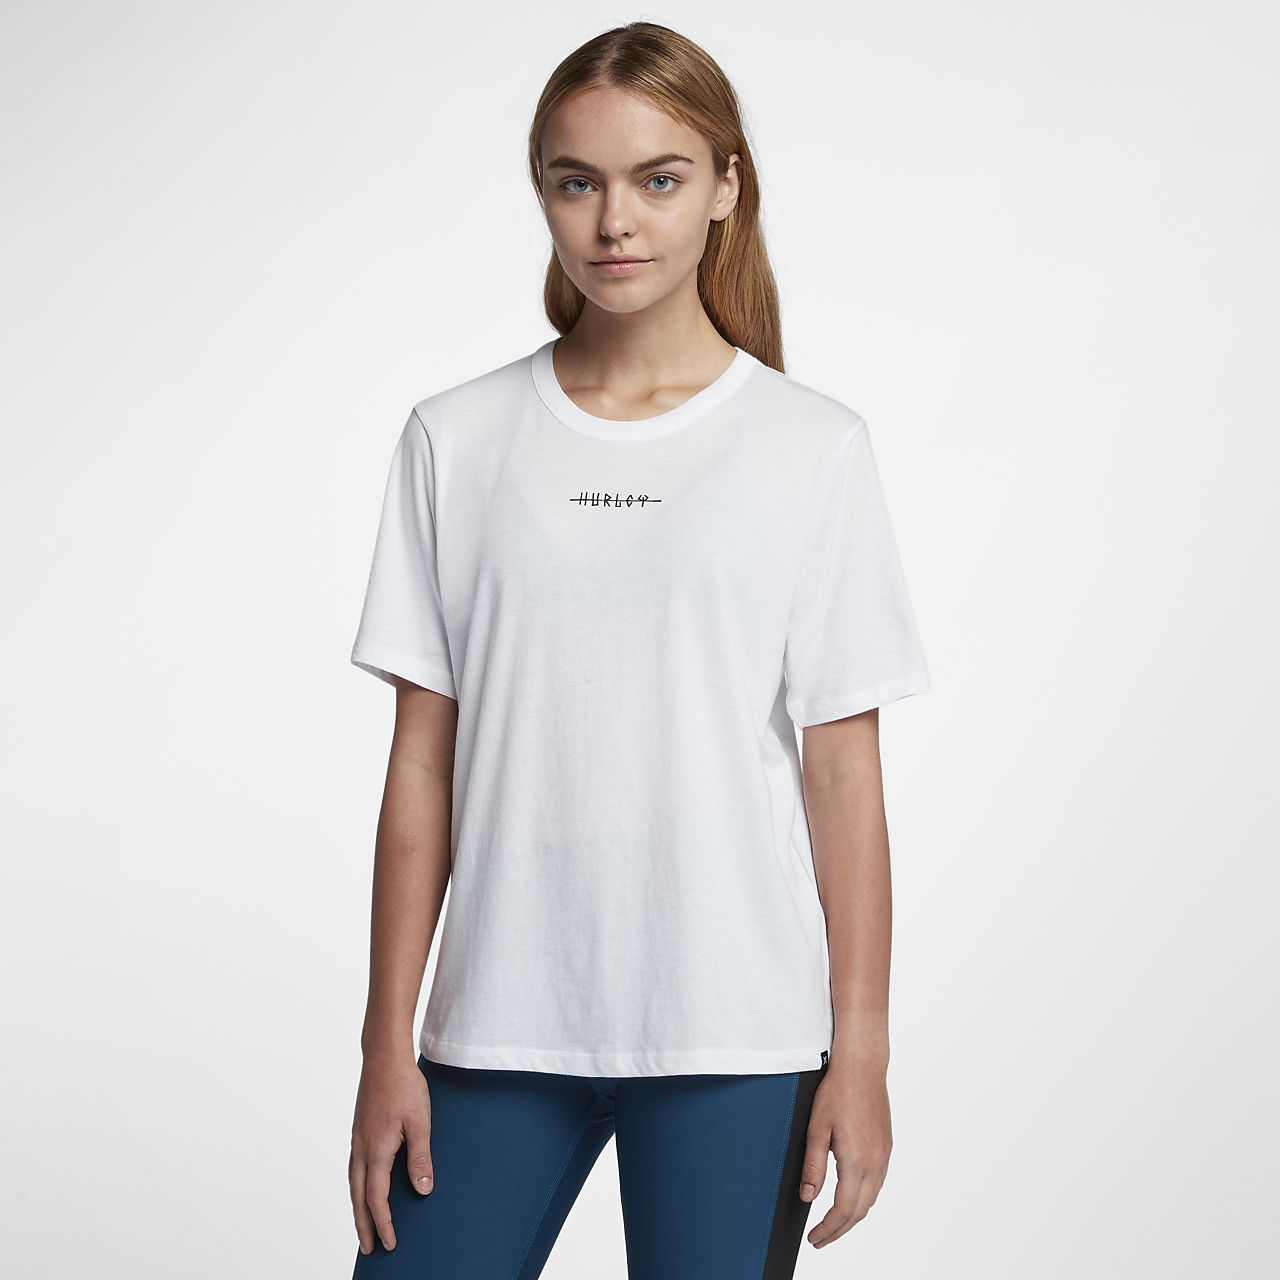 Tee-shirt Hurley Island Ties Perfect Crew pour Femme